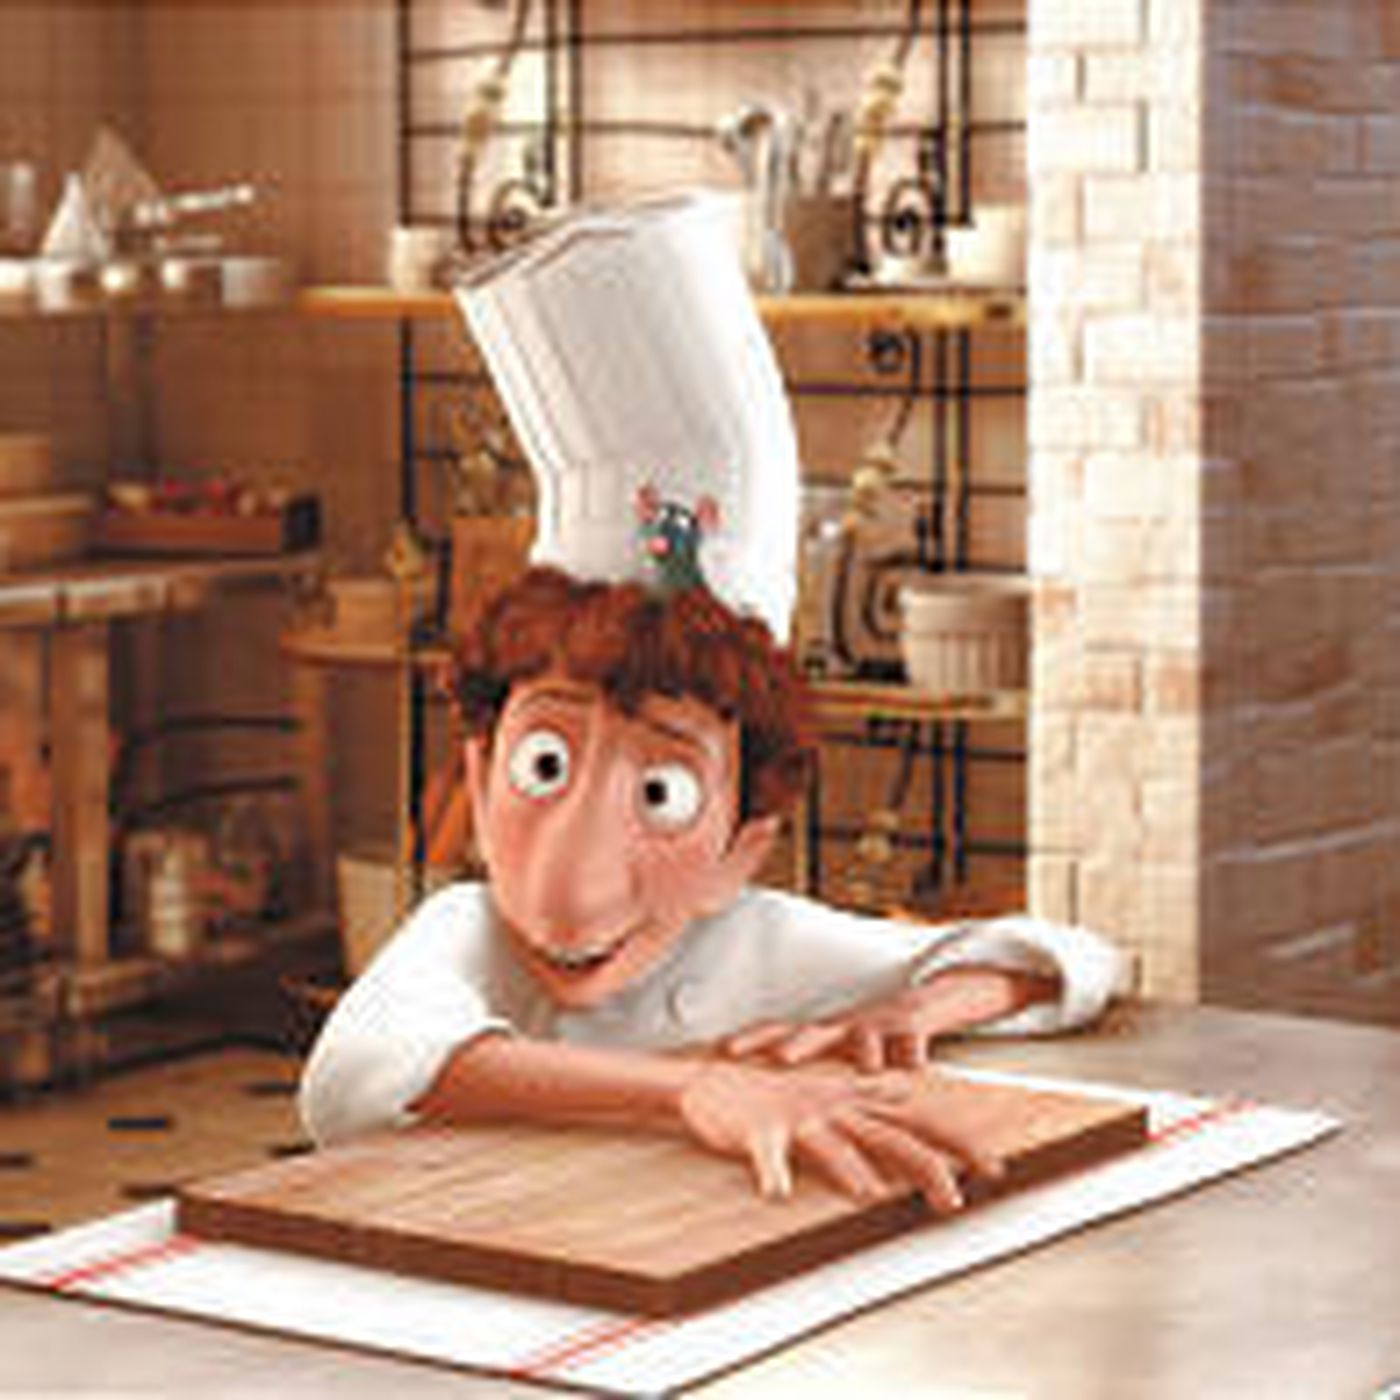 Film Review Clever Ratatouille Offers Visual Feast Deseret News